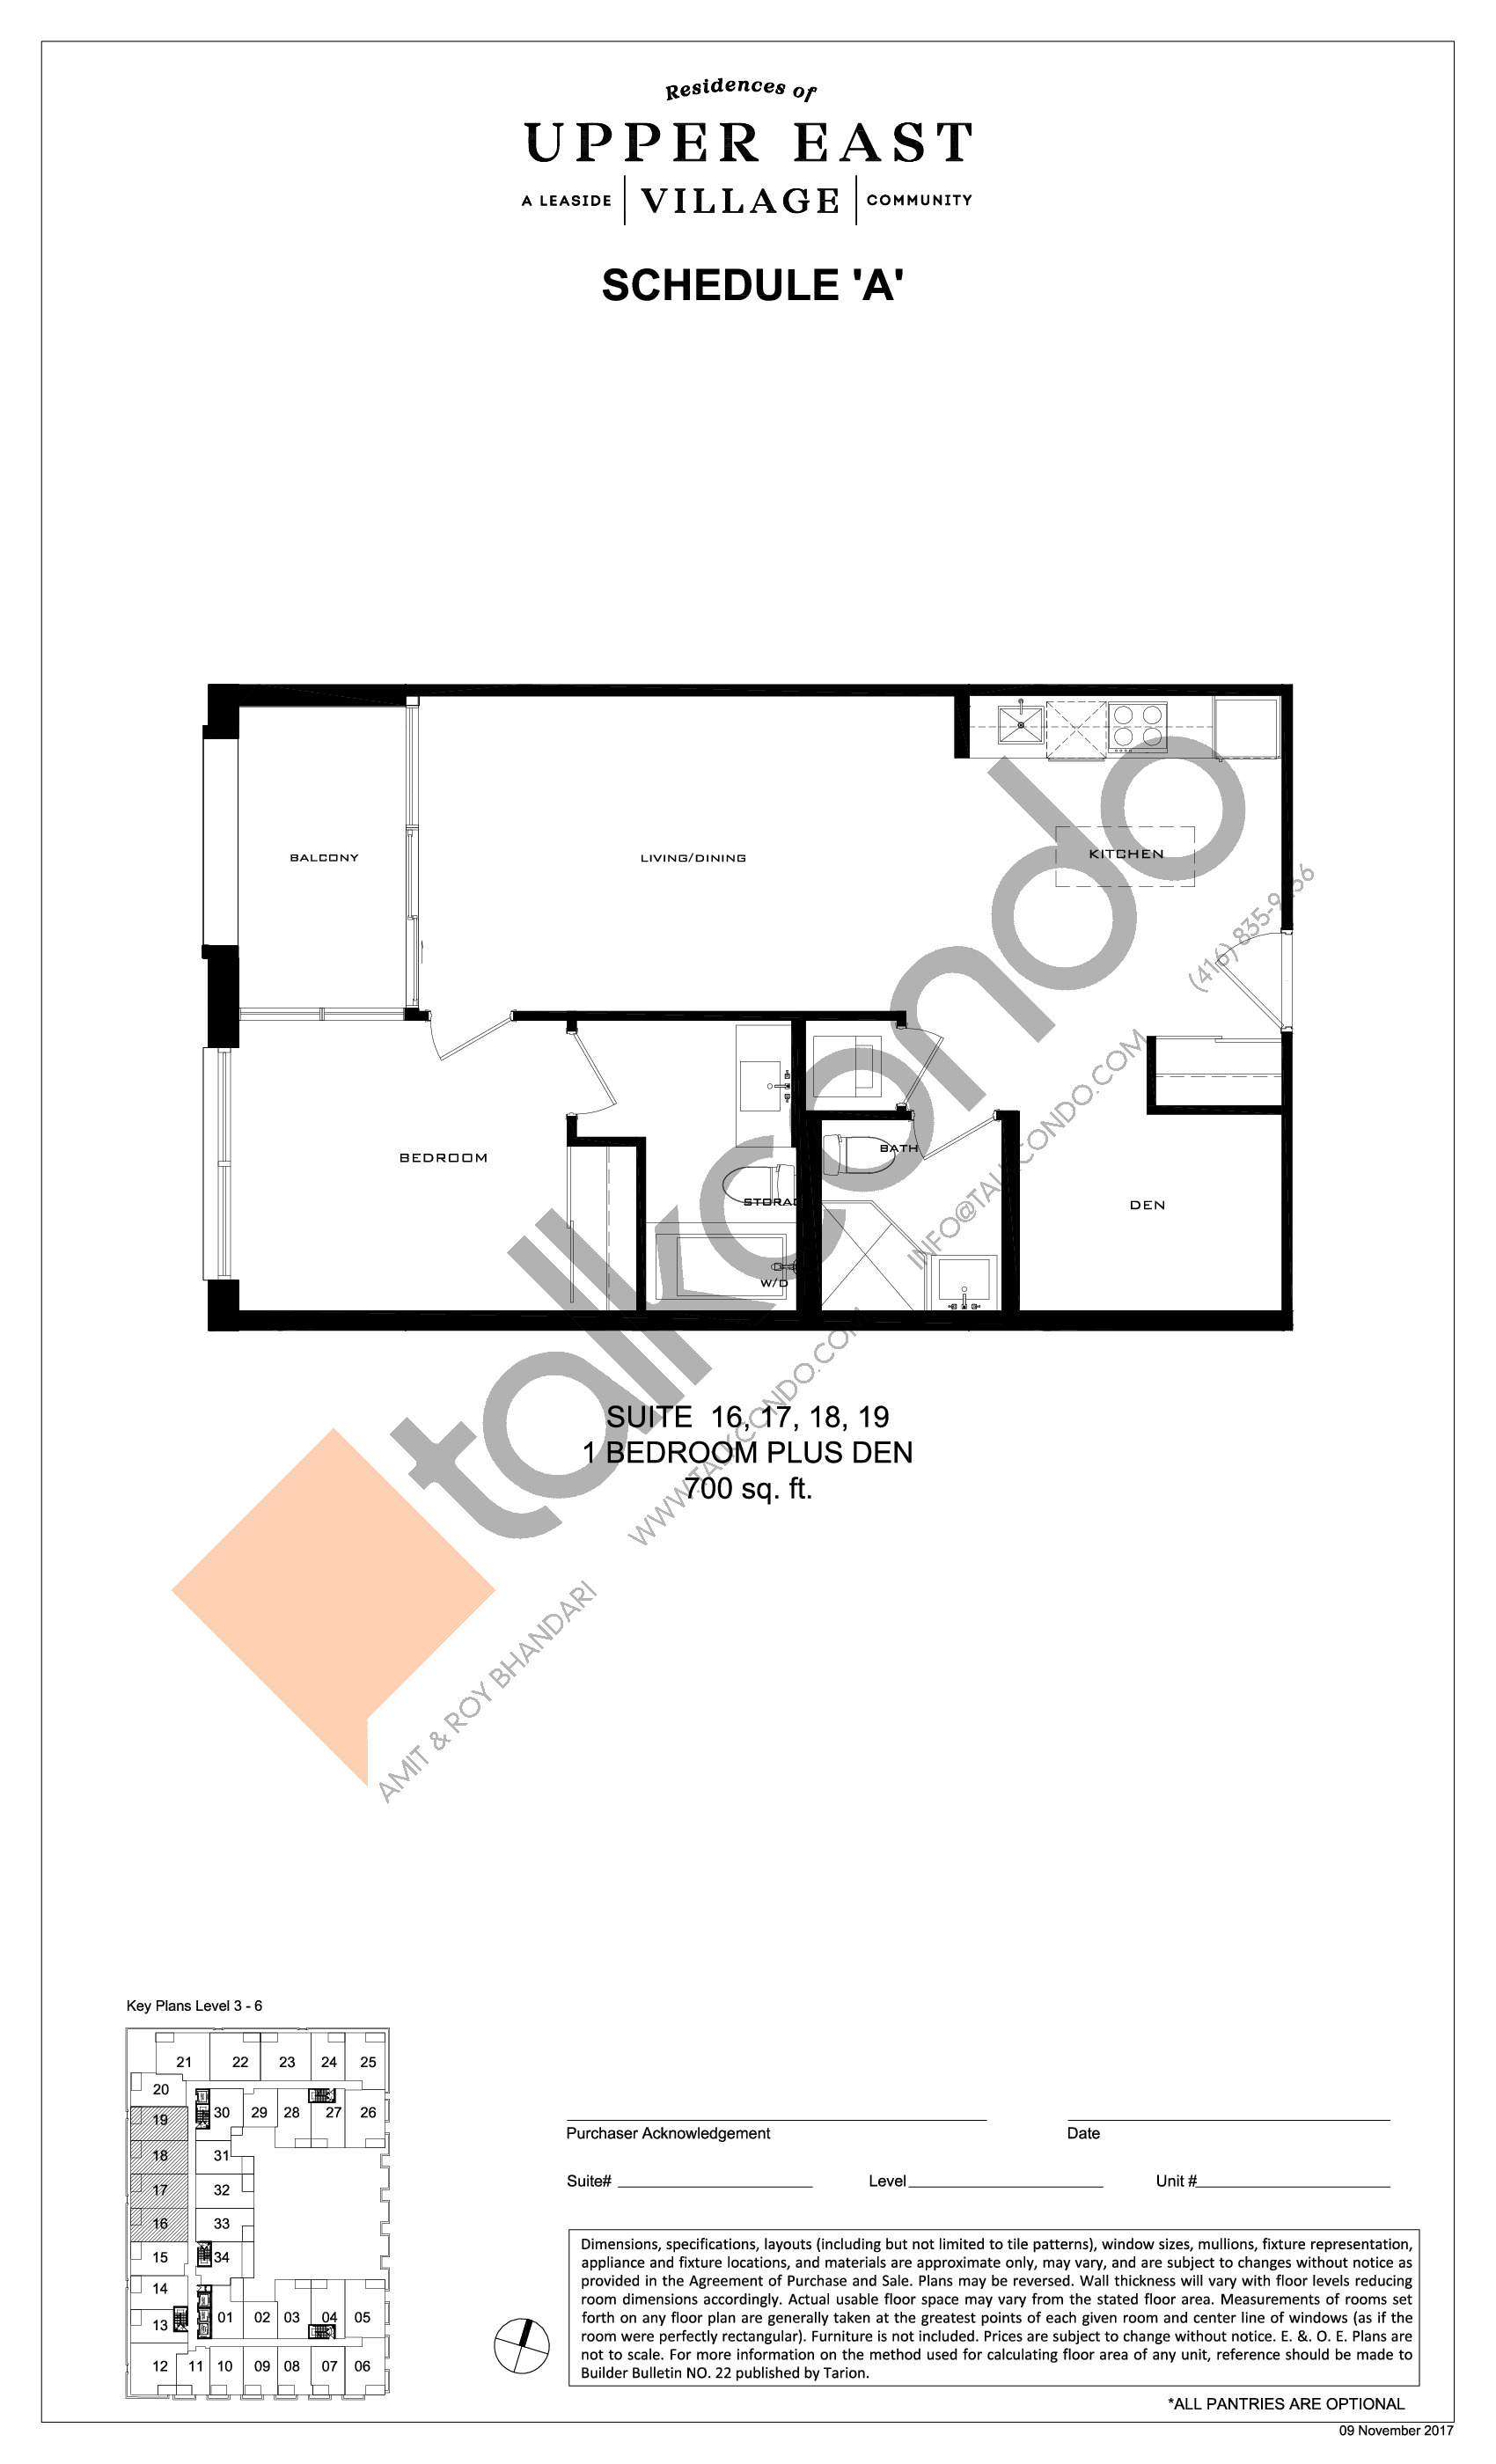 Suite 16, 17, 18, 19 Floor Plan at Upper East Village Condos - 700 sq.ft